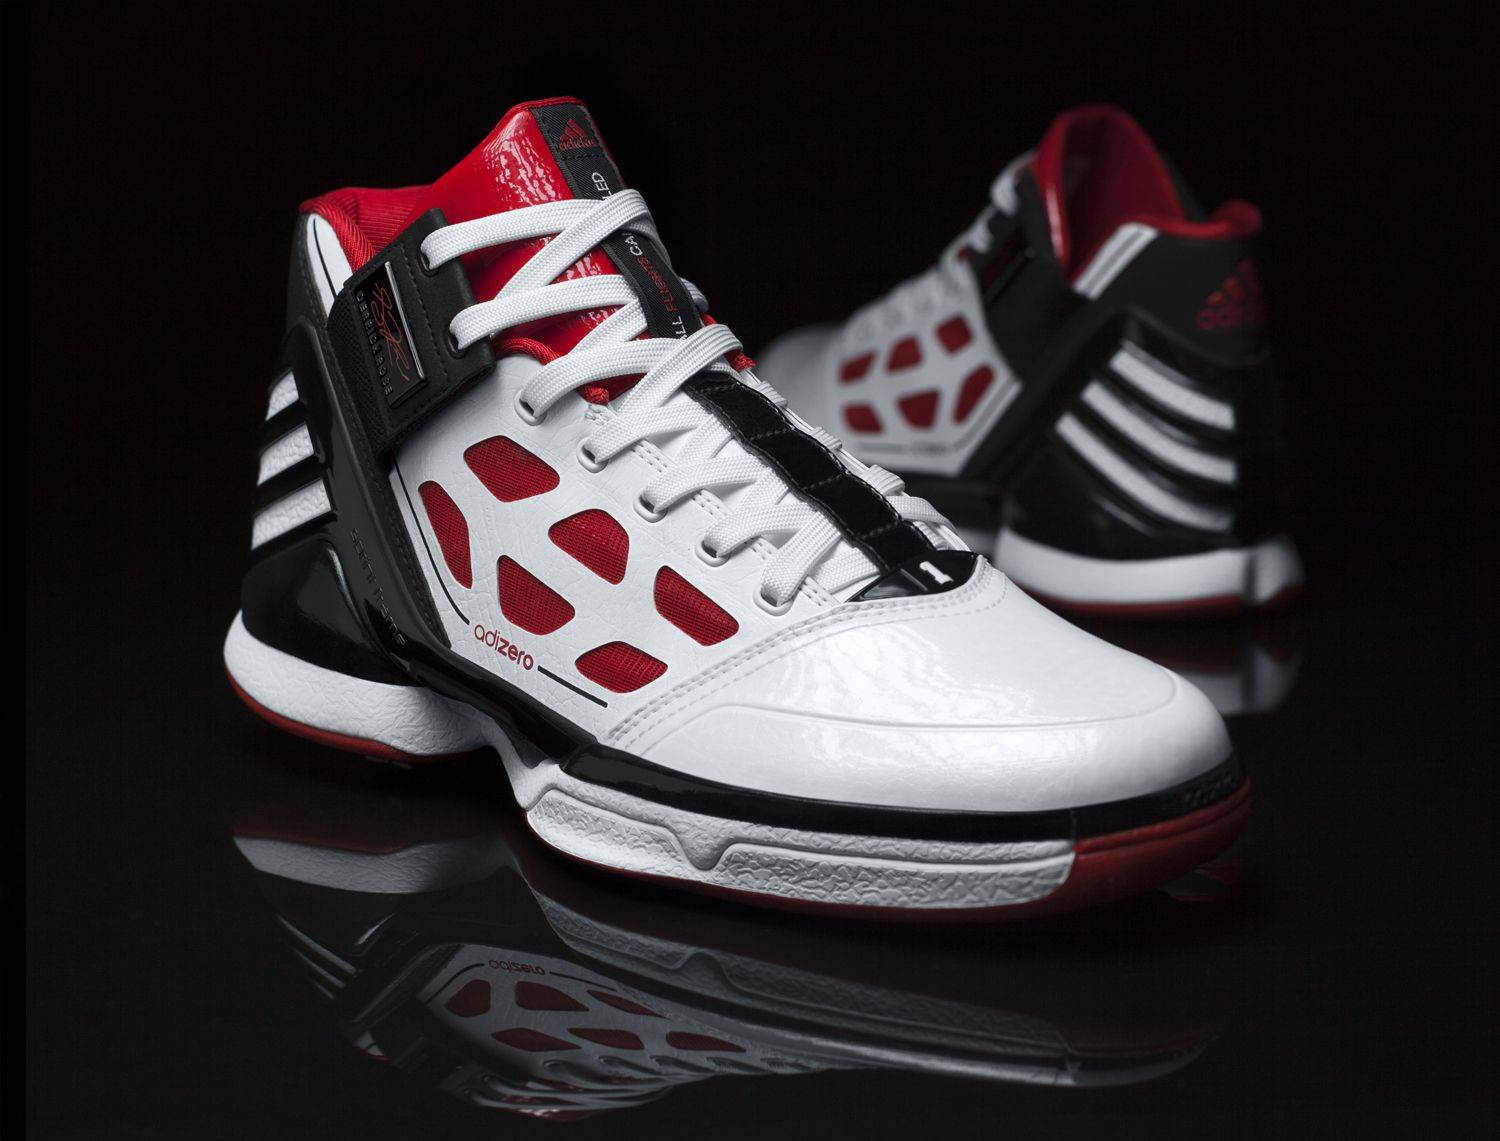 The new Derrick Rose Adidas shoe.